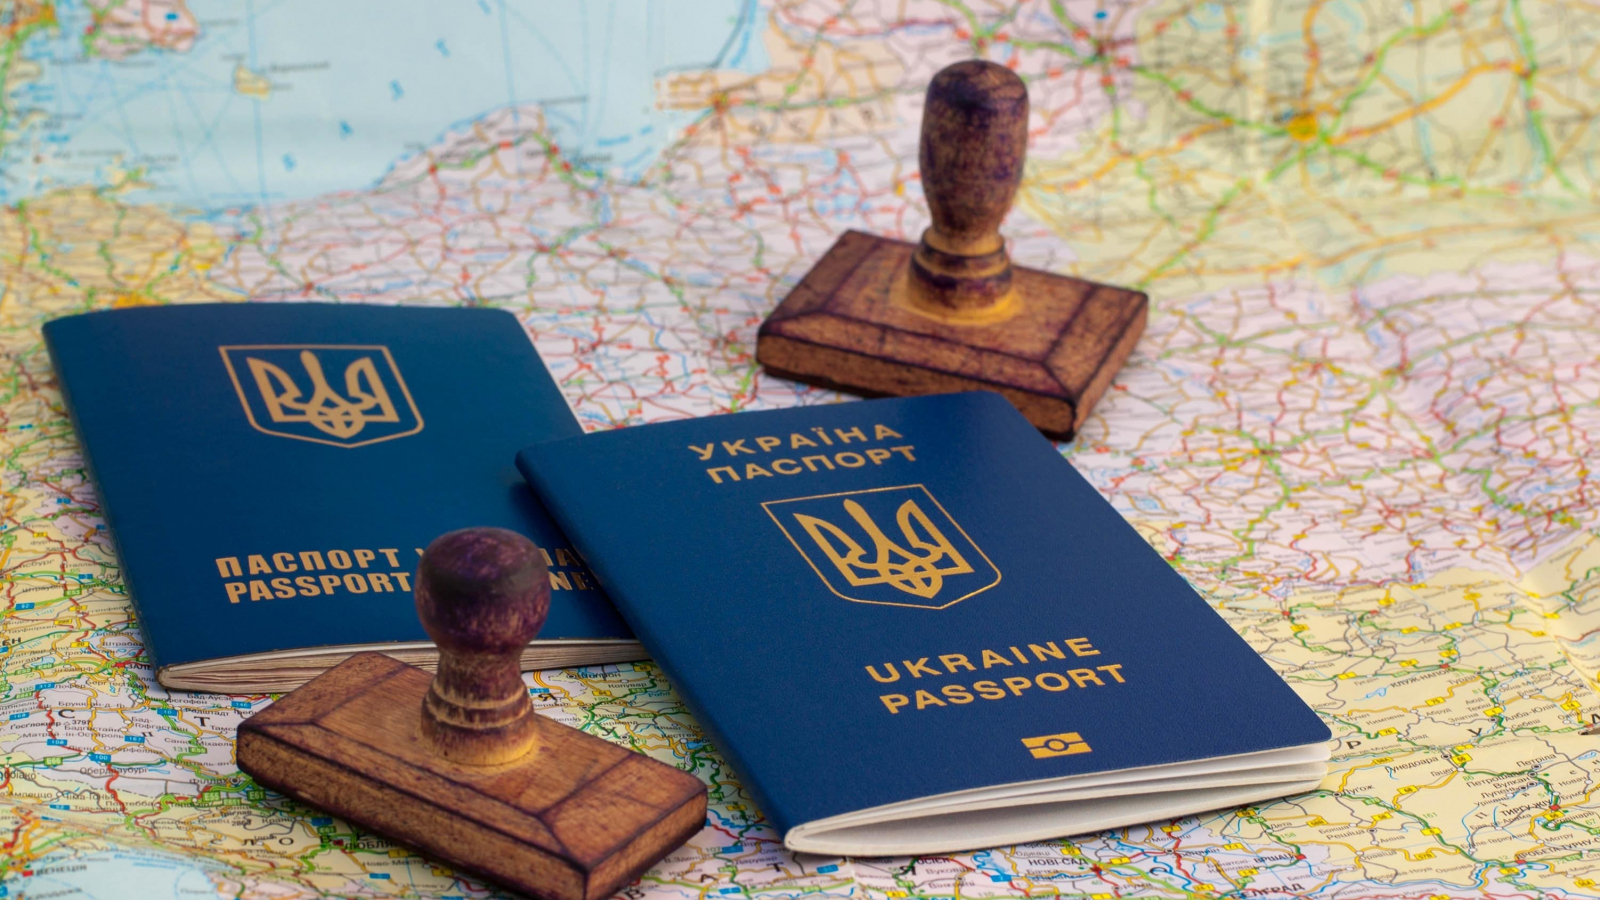 Ukrainian passports, stamps and map of Europe (Photo: Shutterstock.com)